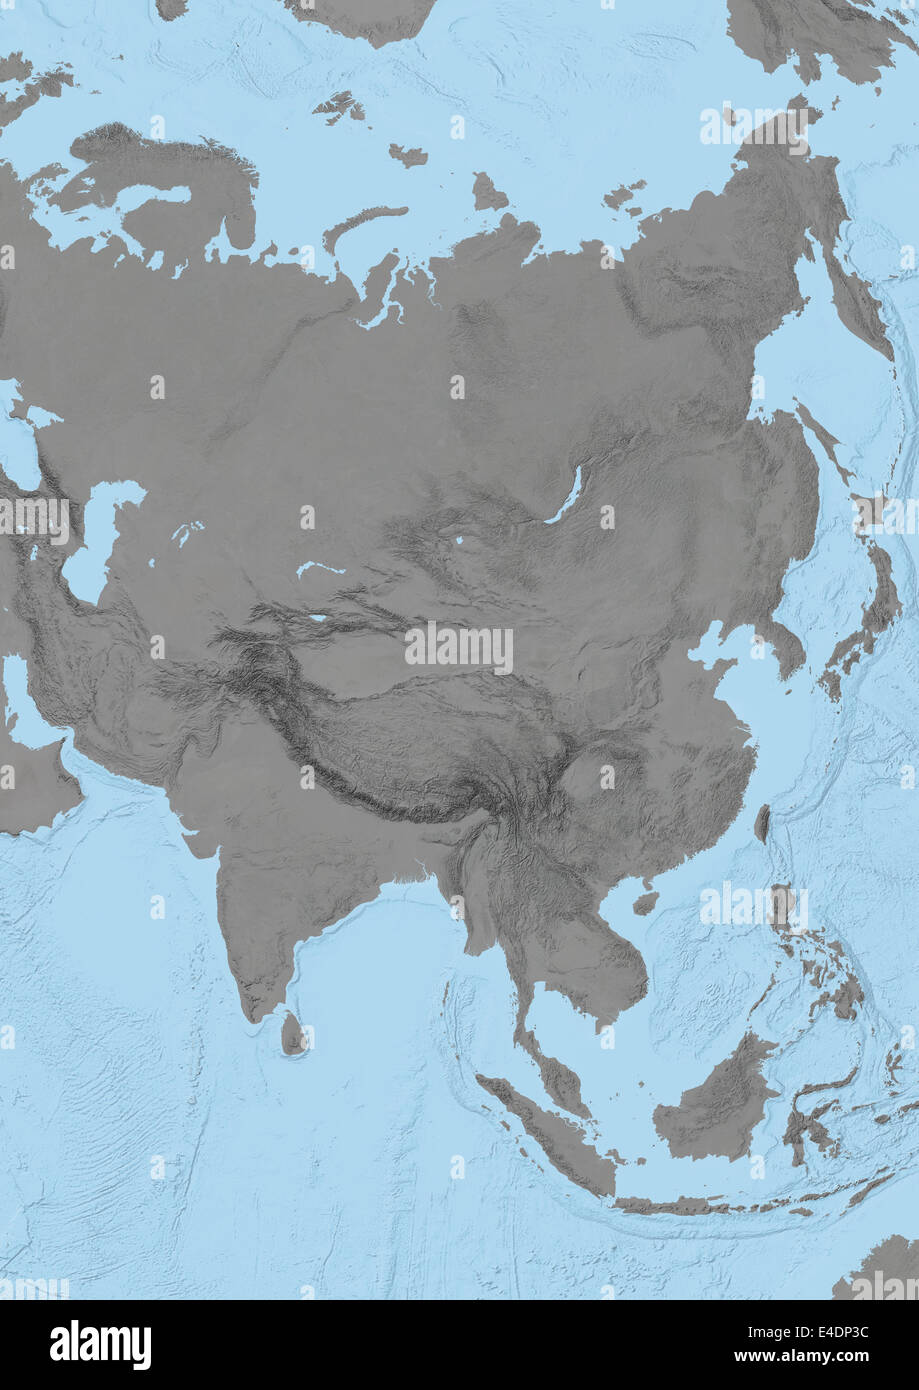 Asian relief map you know when